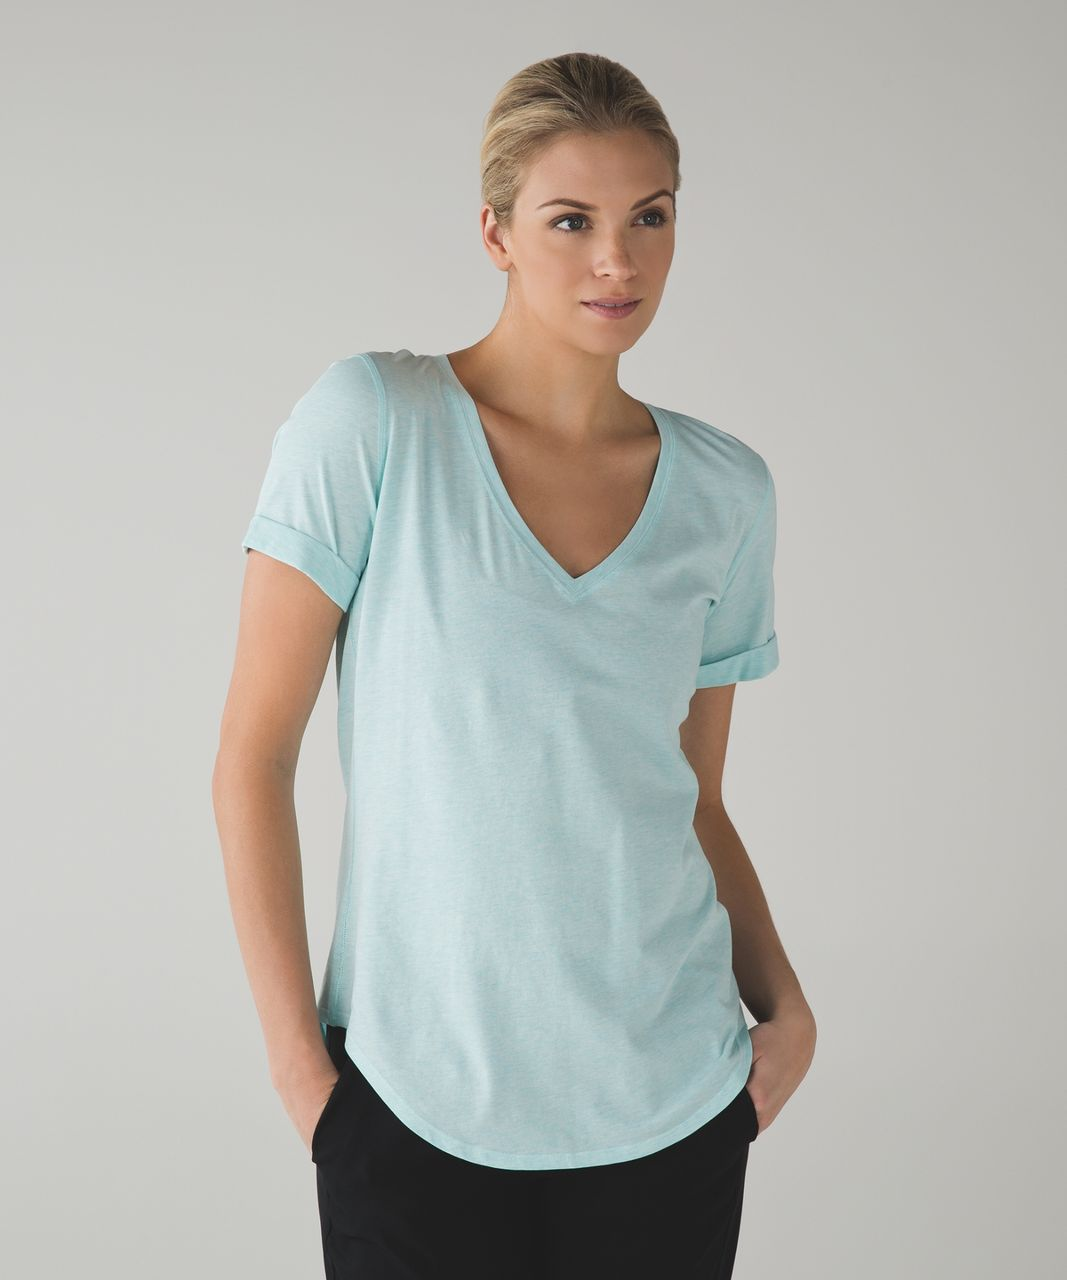 Lululemon Love Tee II - Heathered Aquamarine